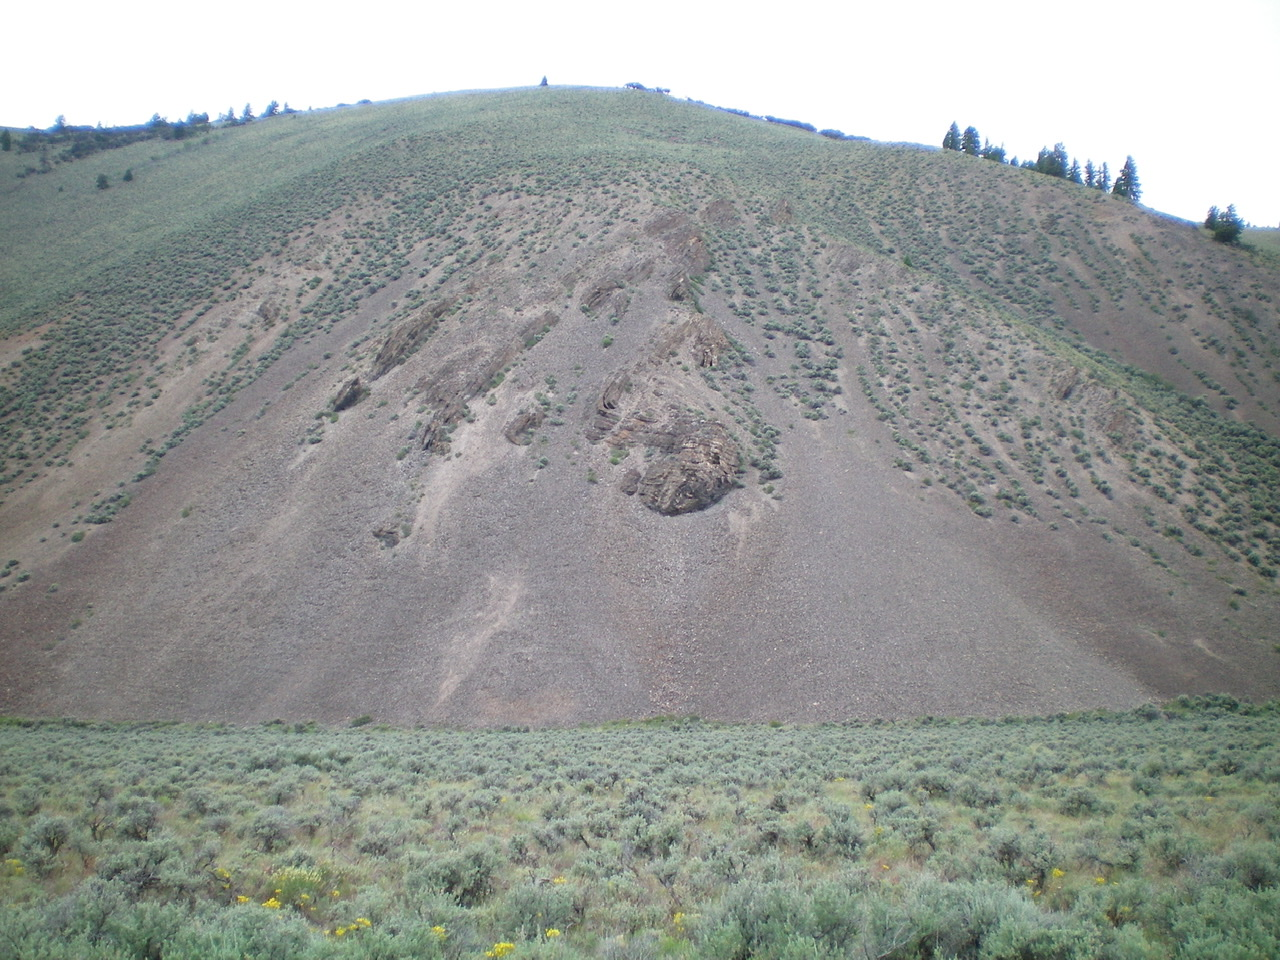 The Southeast Shoulder of Peak 8700 as viewed from its base along Trail Creek Road. The rocky outcrop in dead-center must be skirted in a steep gully on its N side. The final boot-ski down the loose scree (below the rocky outcrop) is delightful. Livingston Douglas Photo